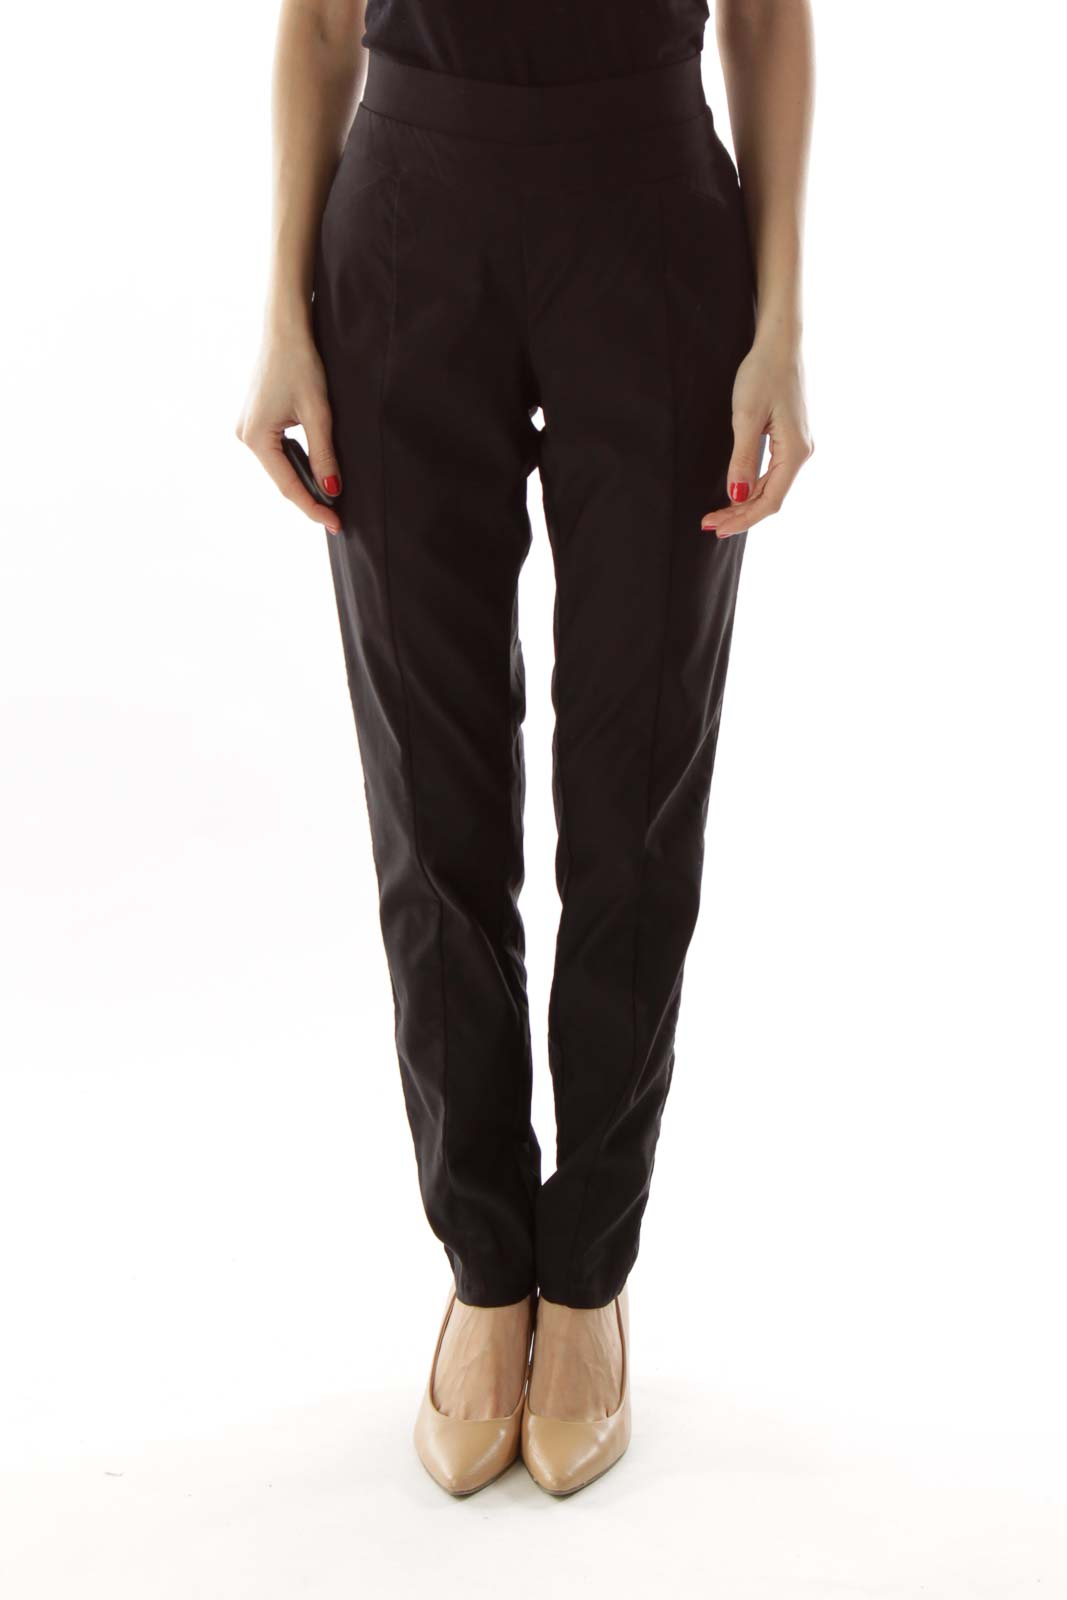 Black Tapered Stretchy Pants